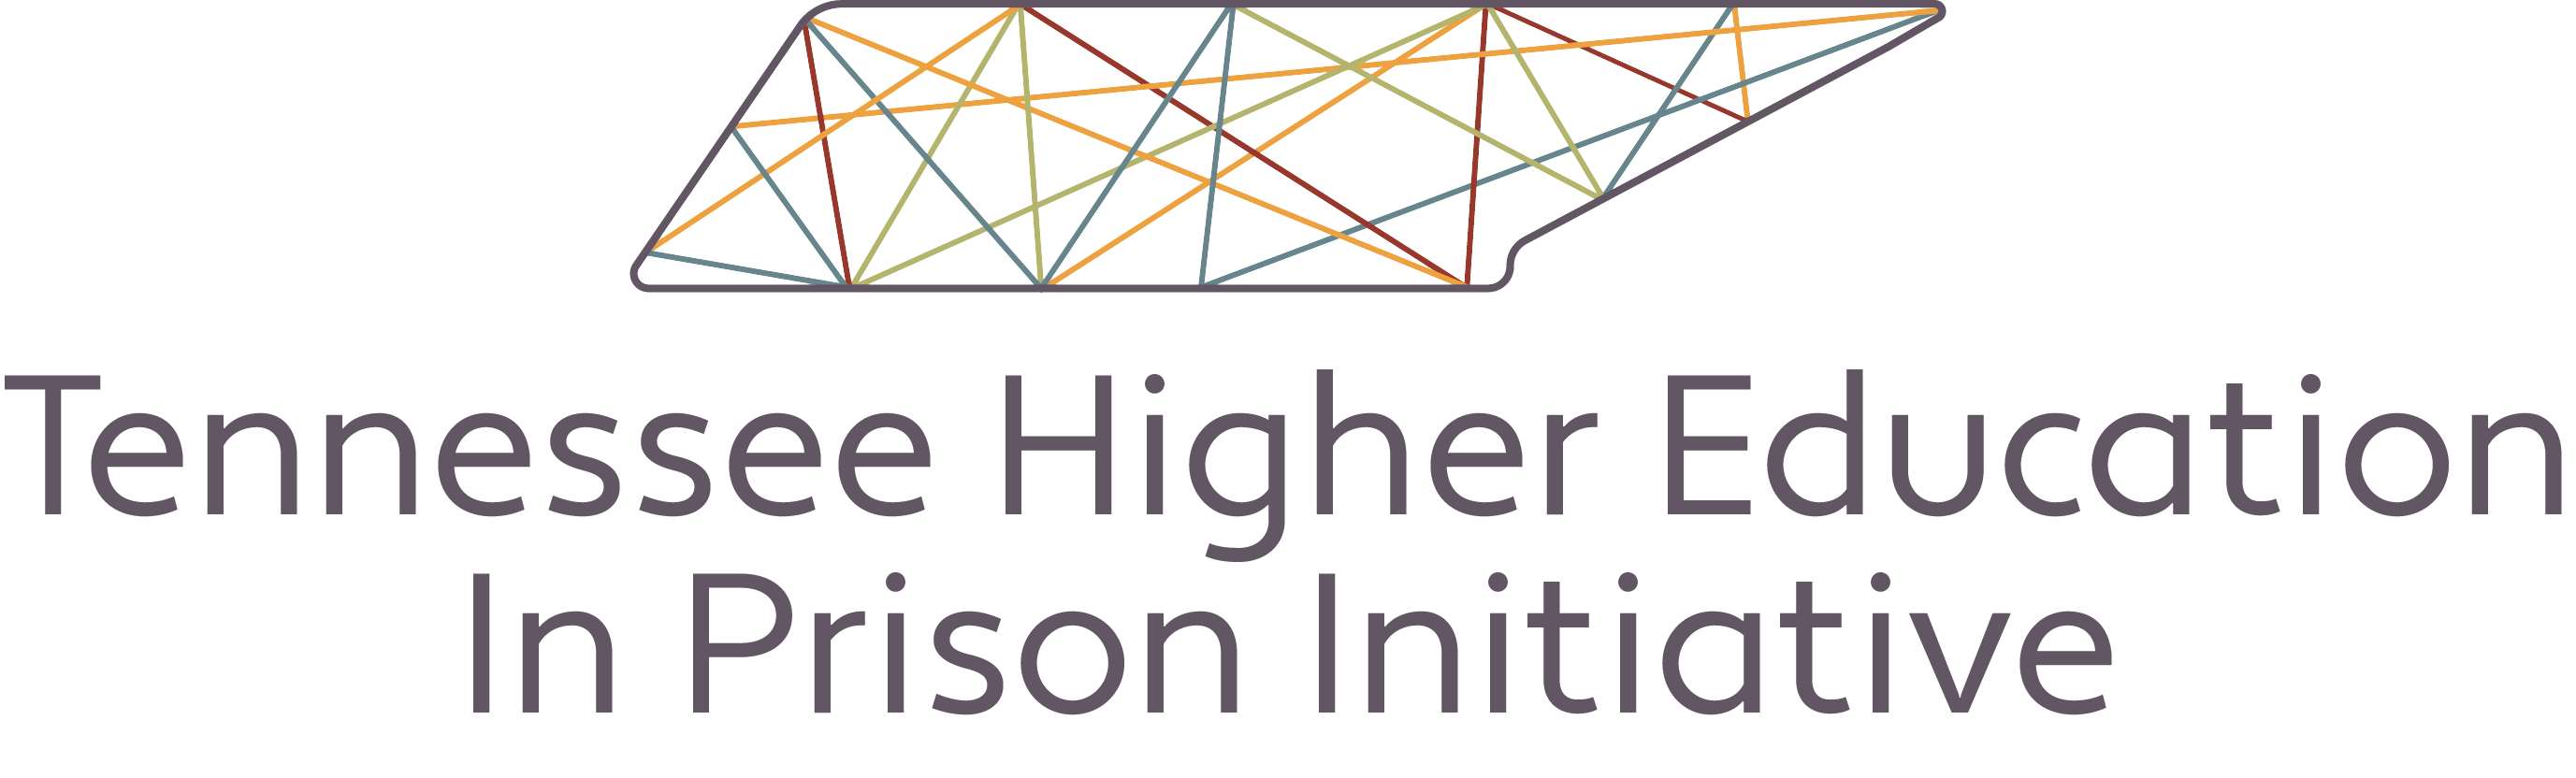 Tennessee Higher Education in Prison Initiative